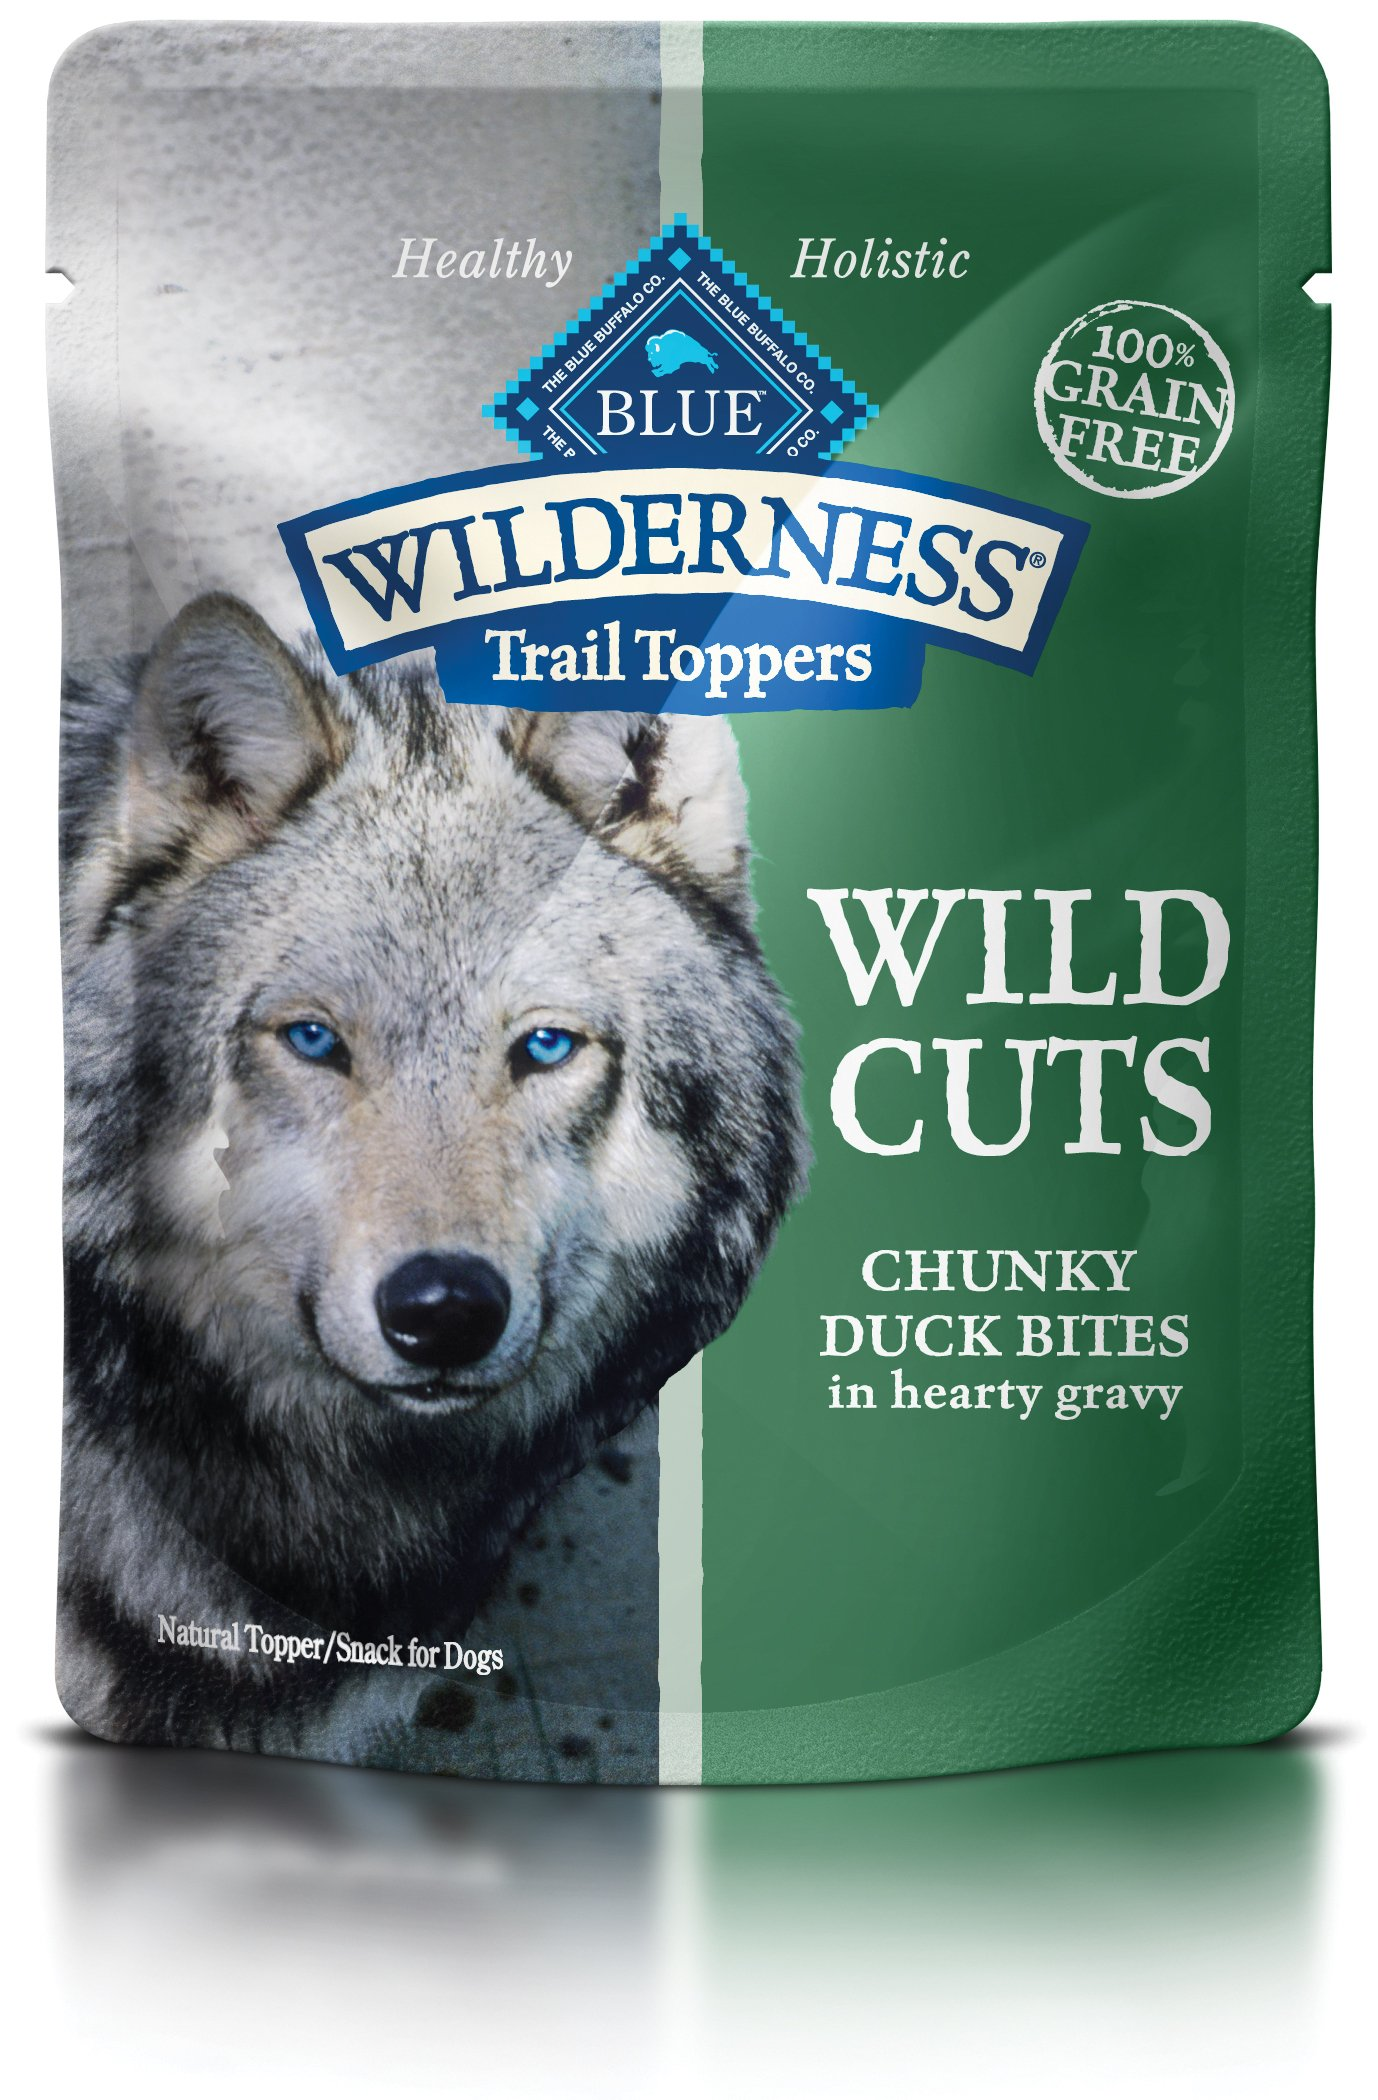 Blue Buffalo Wilderness Trail Toppers Wild Cuts High Protein Grain Free, Natural Wet Dog Food, Chunky Duck Bites In Hearty Gravy 3-Oz Pouch (Pack Of 24) by Blue Buffalo